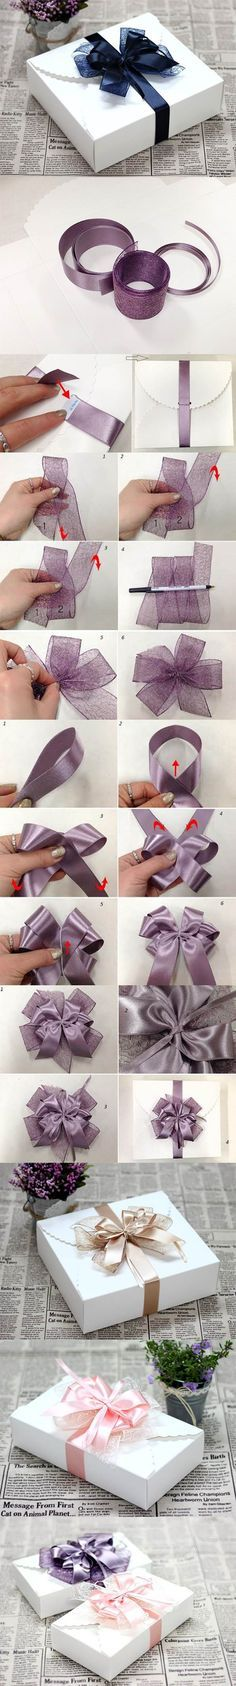 DIY Ribbon Bow for Gift Box Packaging | iCreativeIdeas.com LIKE Us on Facebook == https://www.facebook.com/icreativeideas